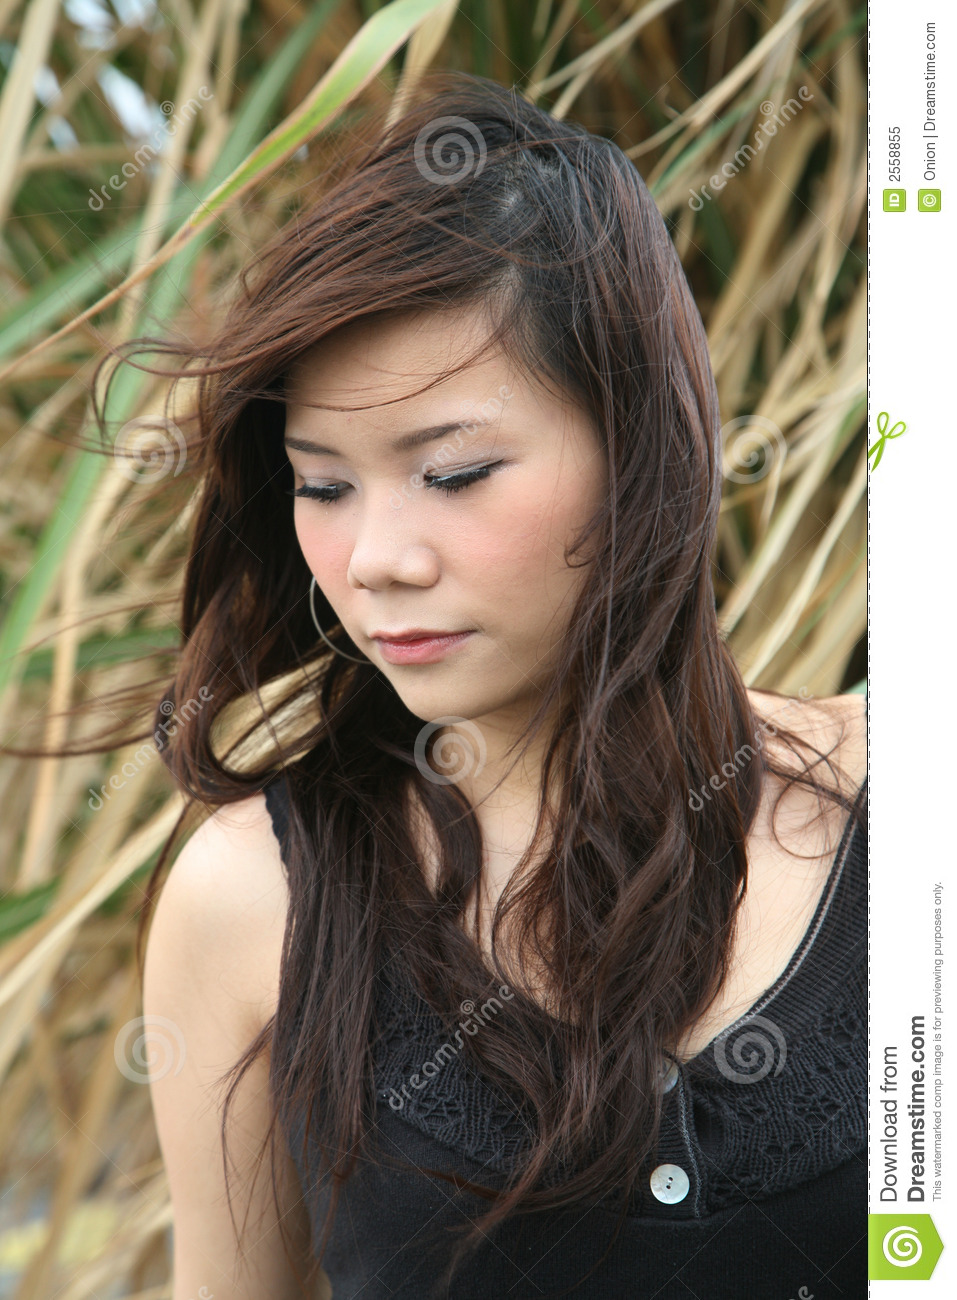 lehman asian single women Official site- join now and search for free blossomscom is the leader in online asian dating find asian women for love, dating and marriage.